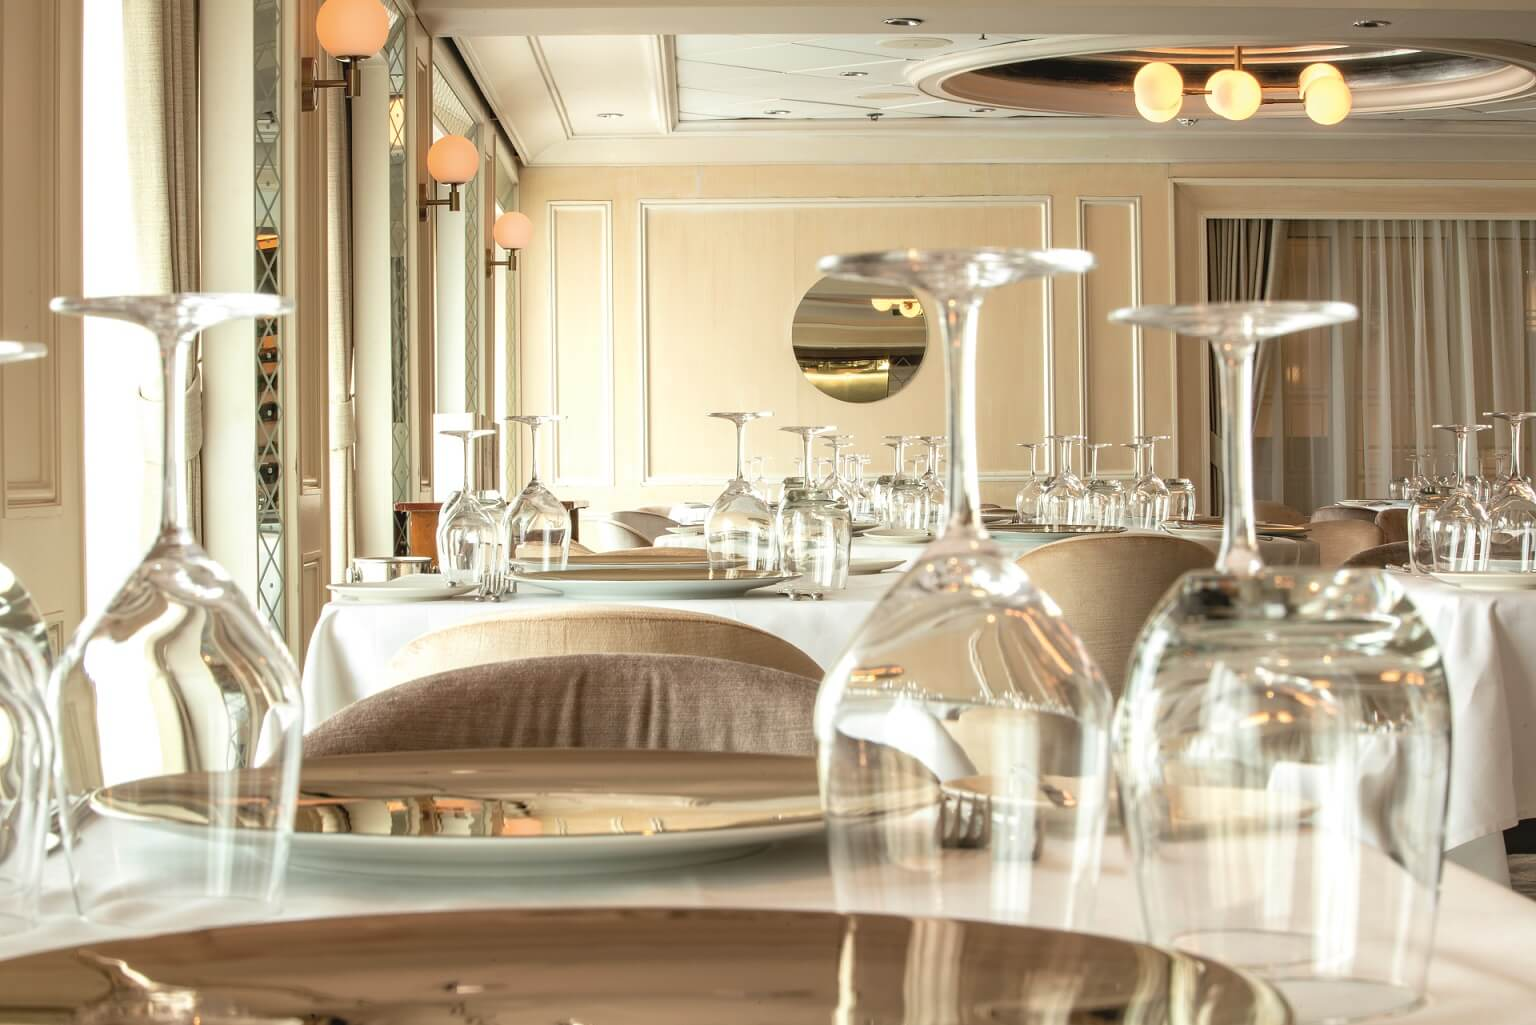 Marella explorer 2 interior rebrand by Trimline - Dining Club